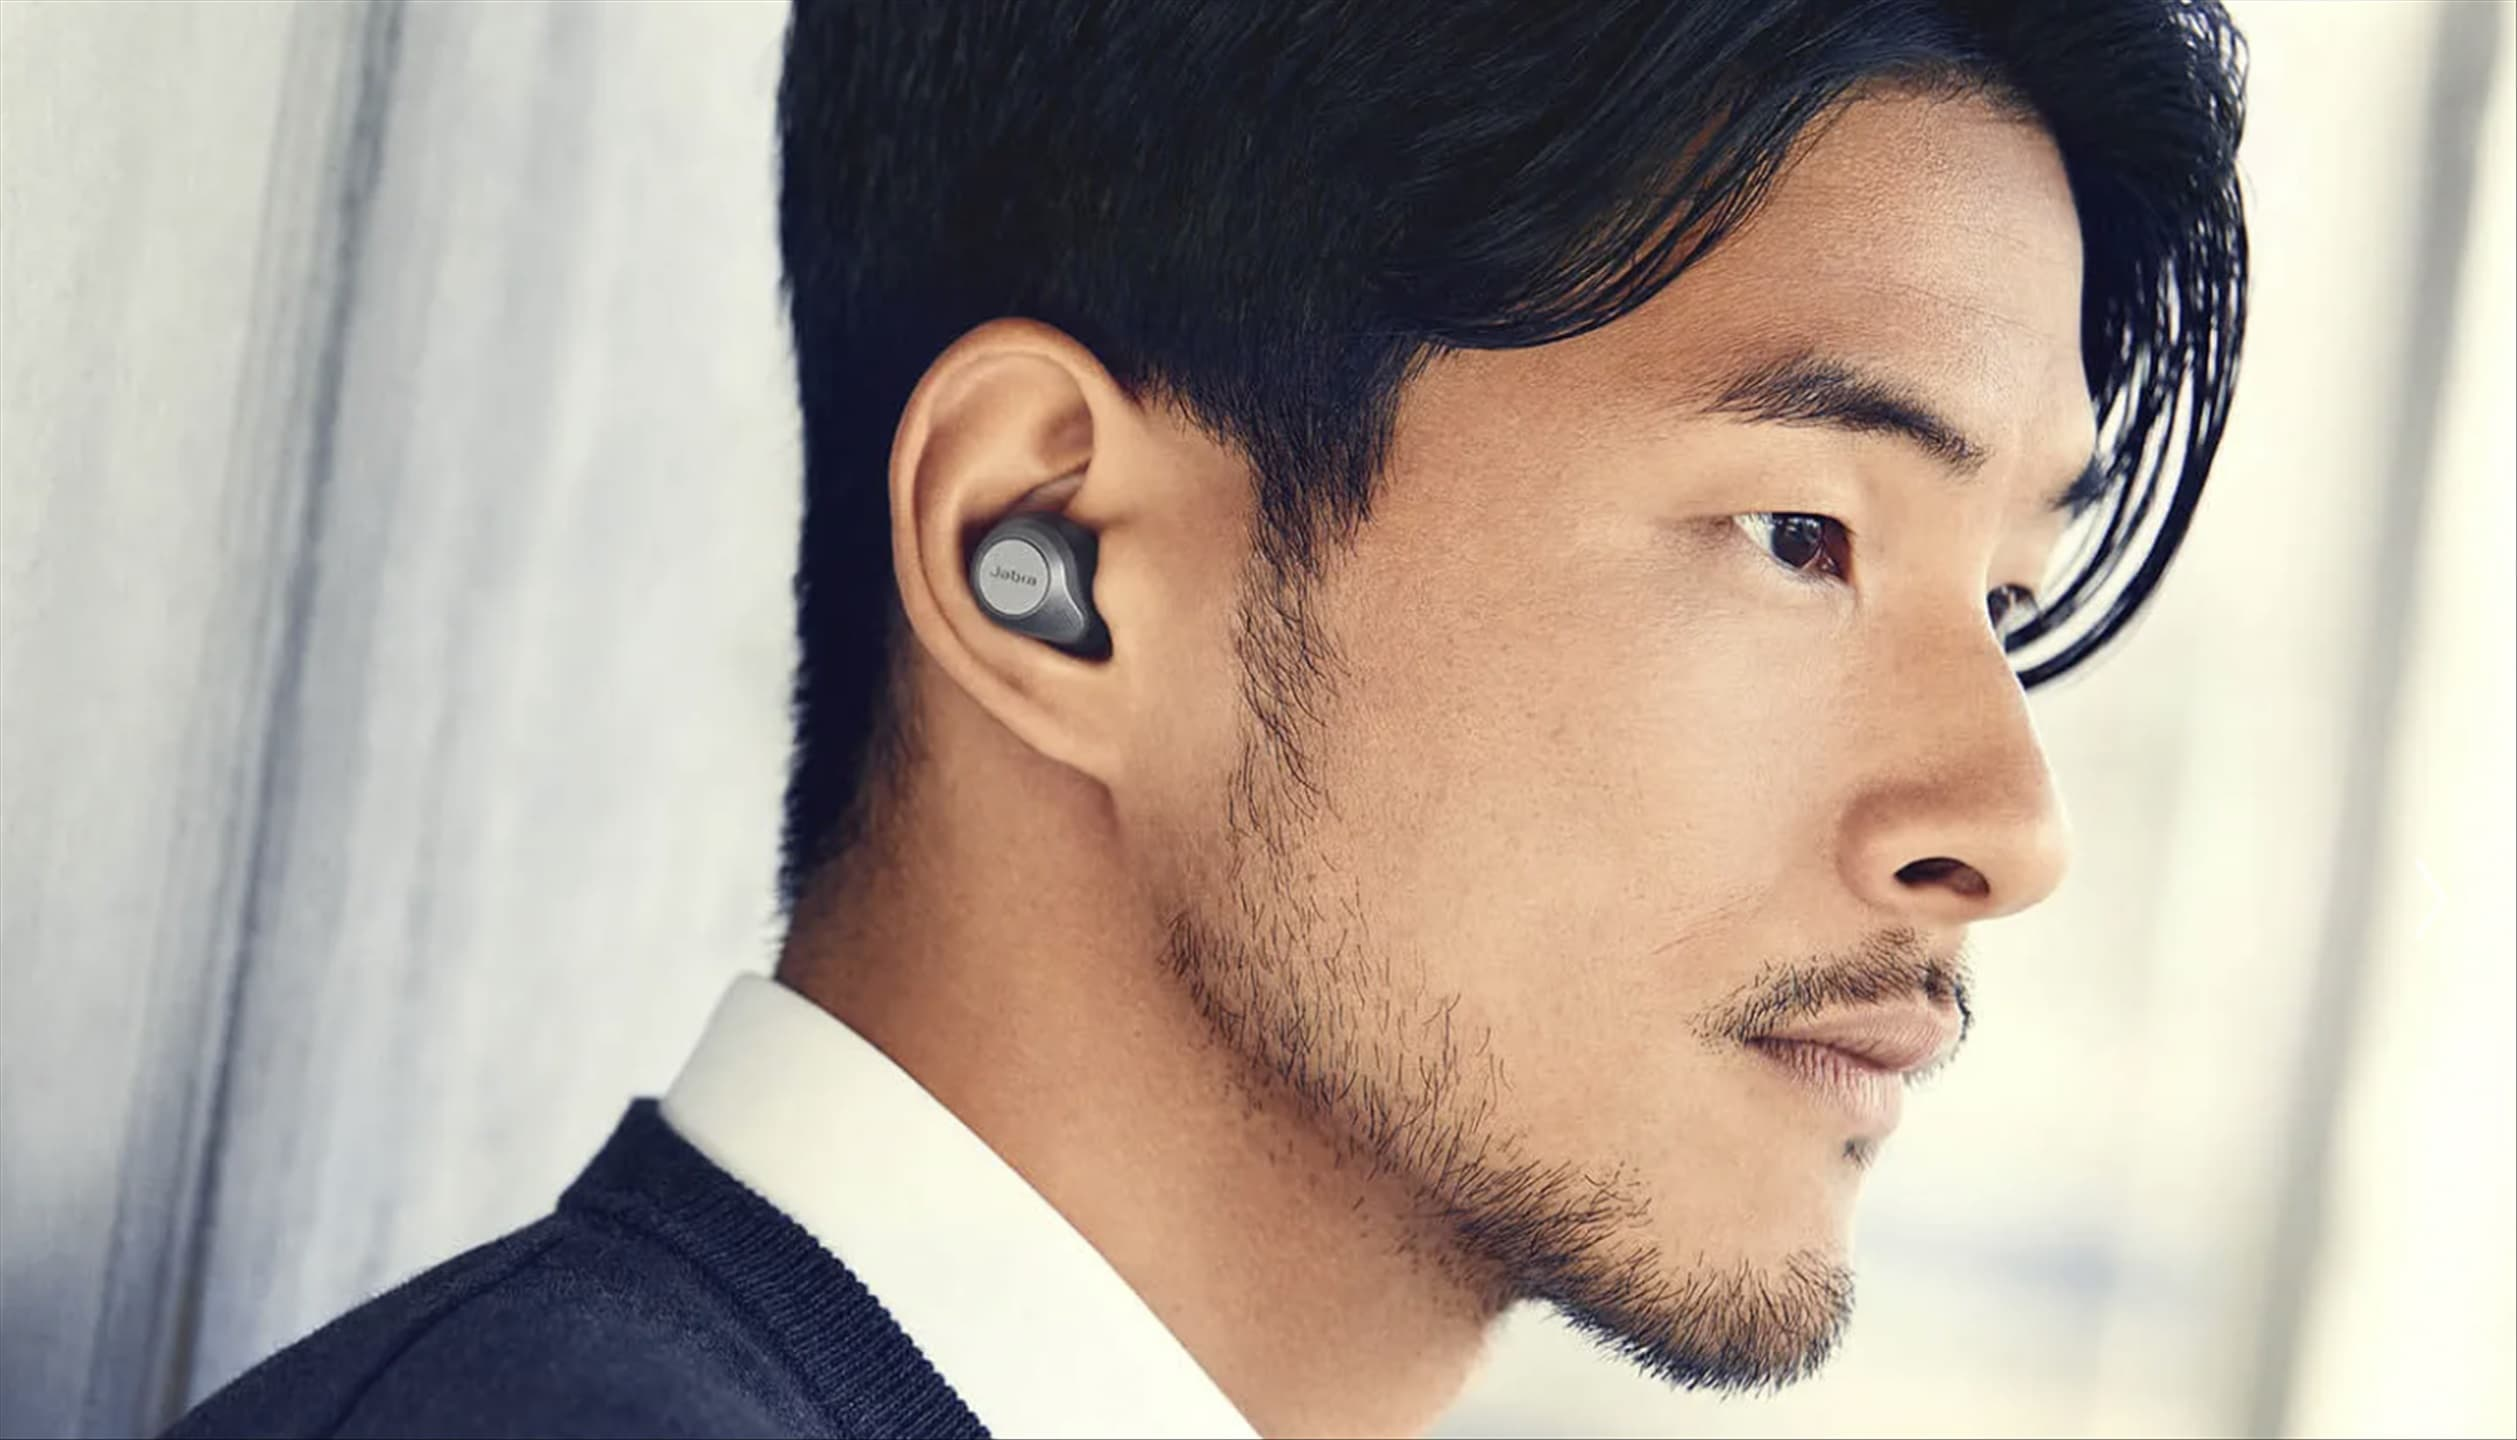 Jabra's new feature will test and ensure that you get a snug fit